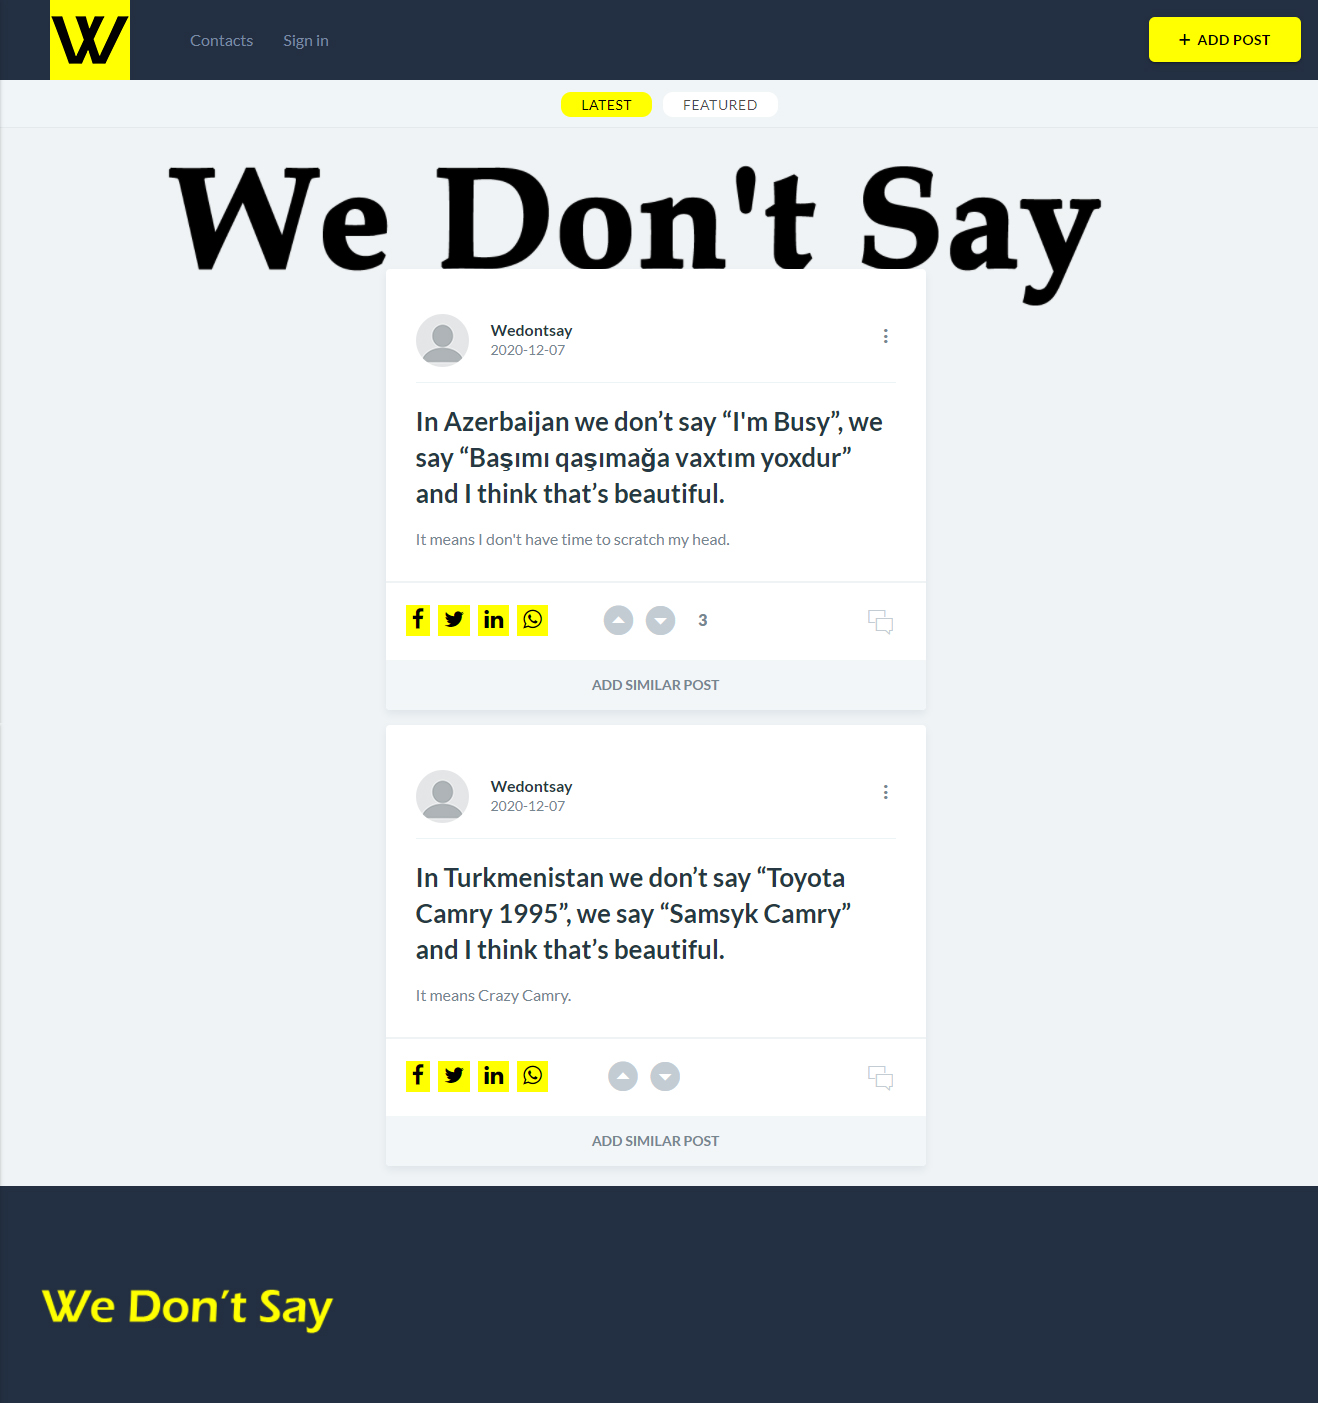 We Don't Say